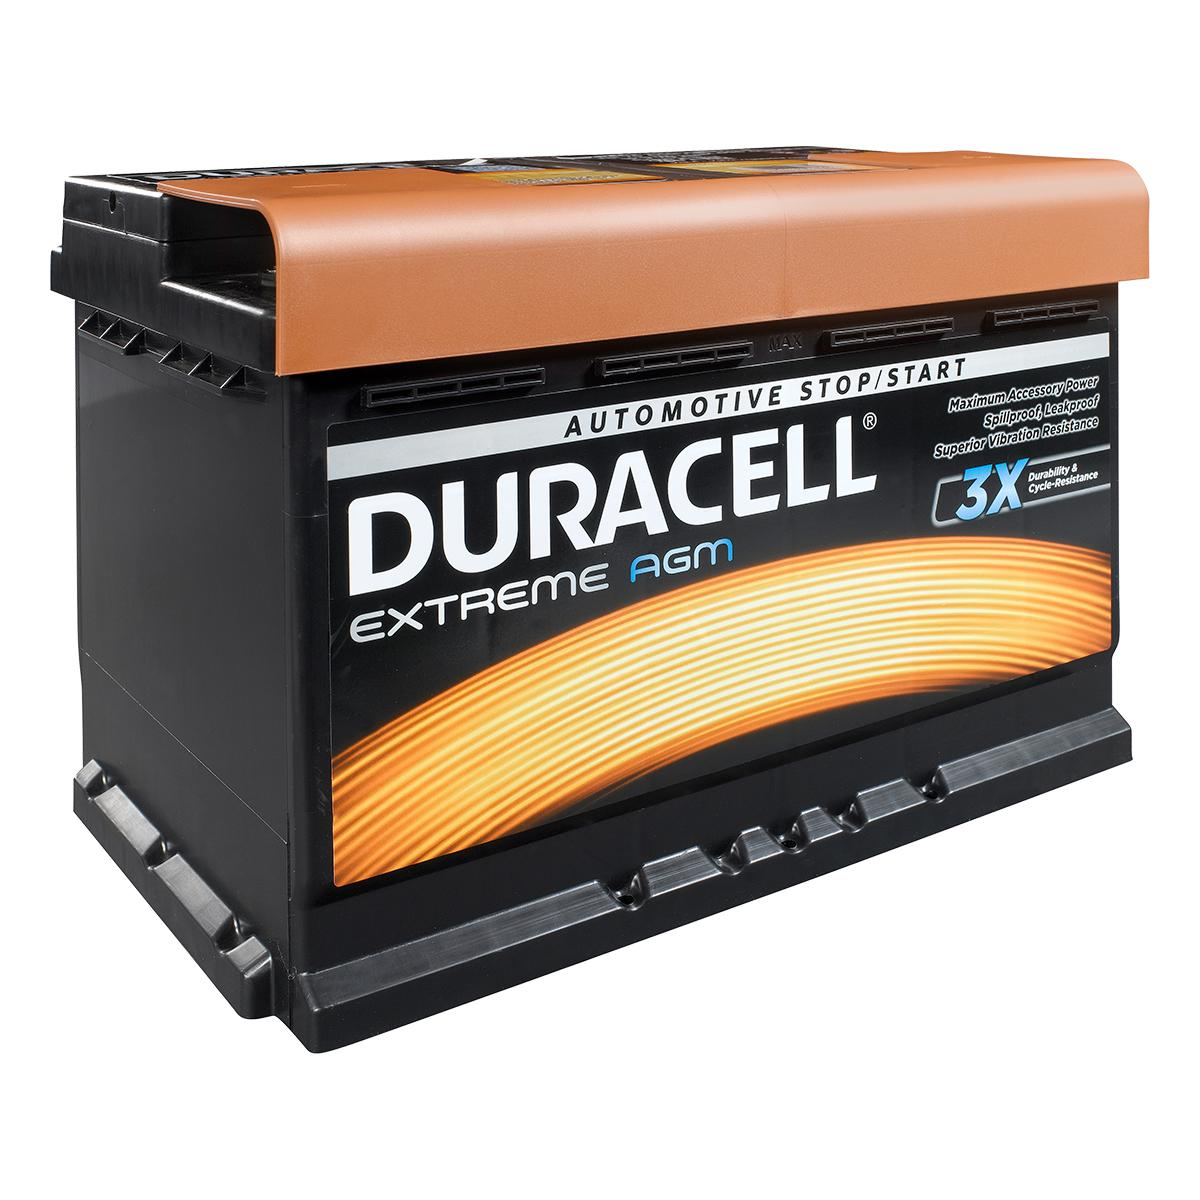 Duracell 096 / DE70 AGM Extreme Car Battery - www ...